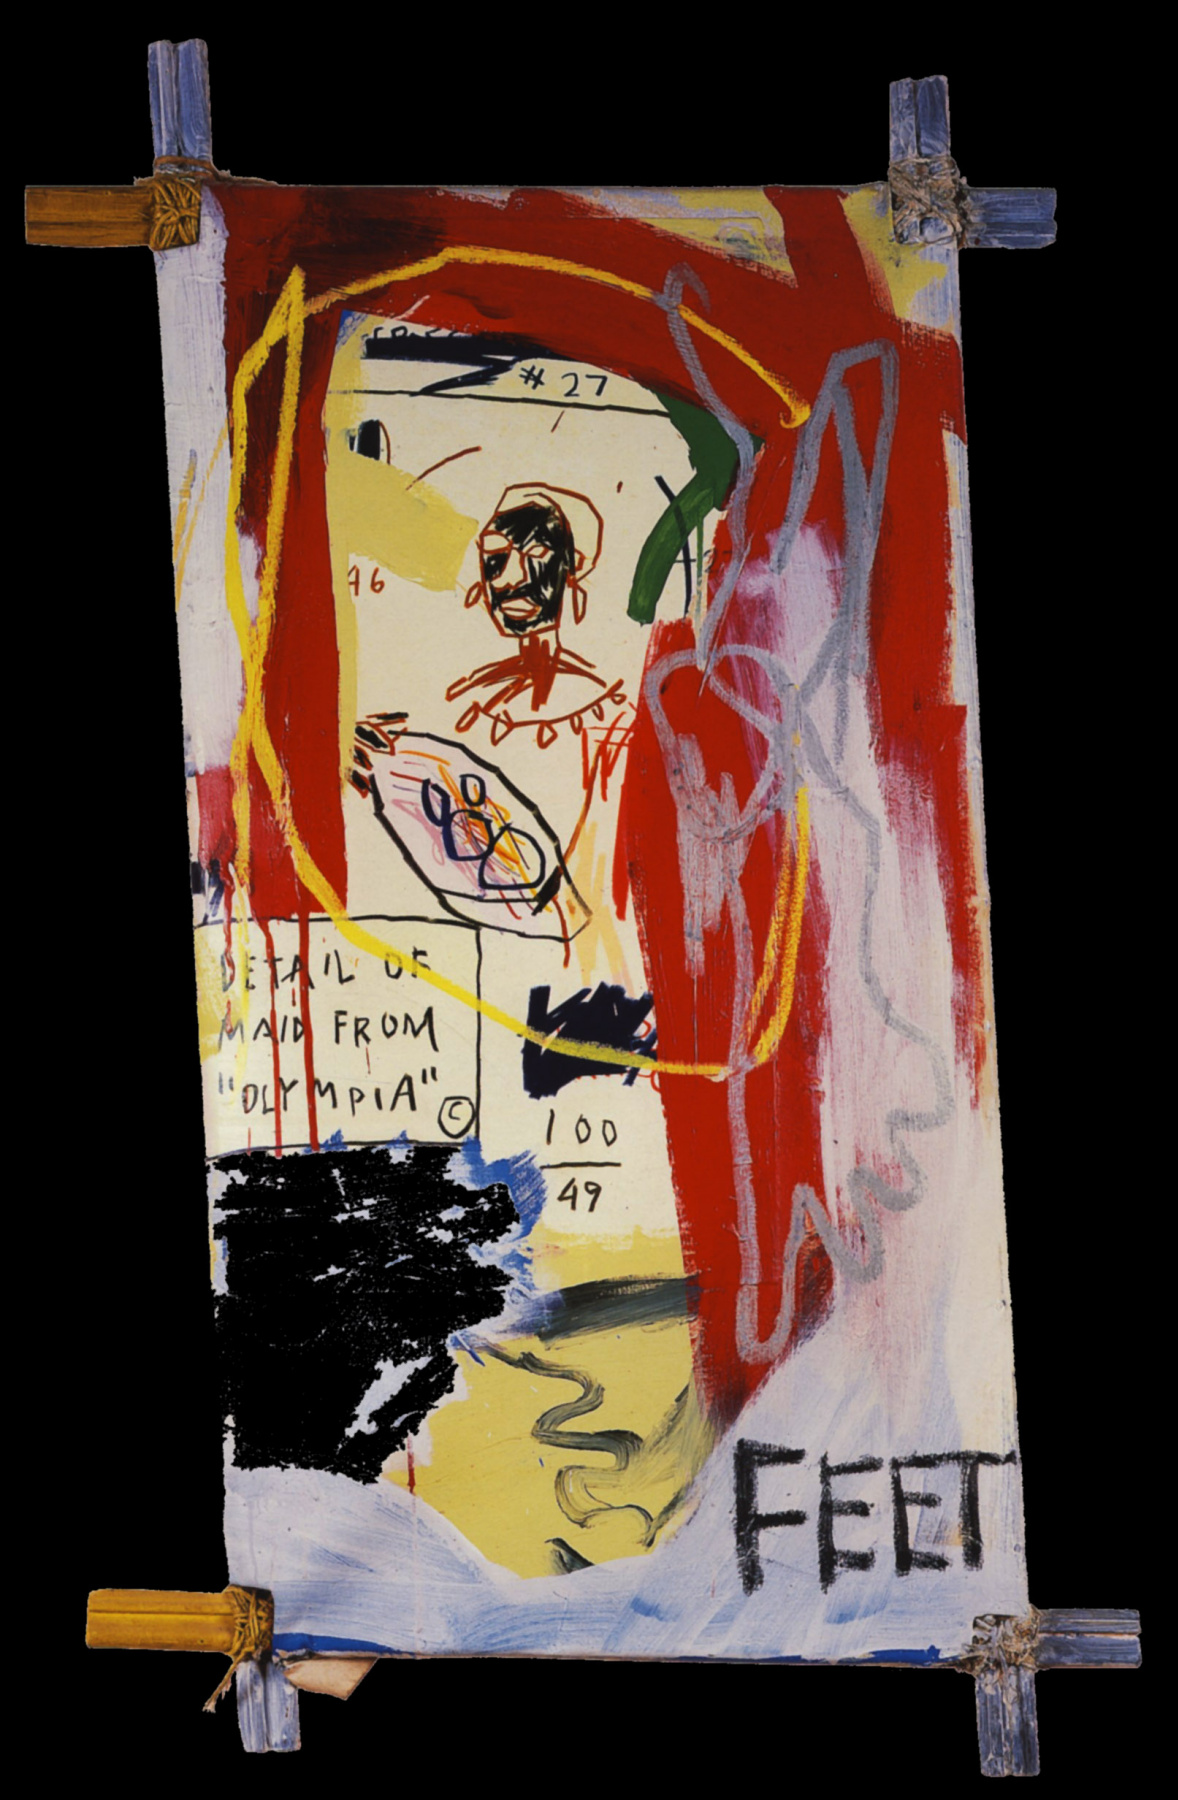 Maid from Olympia Basquiat